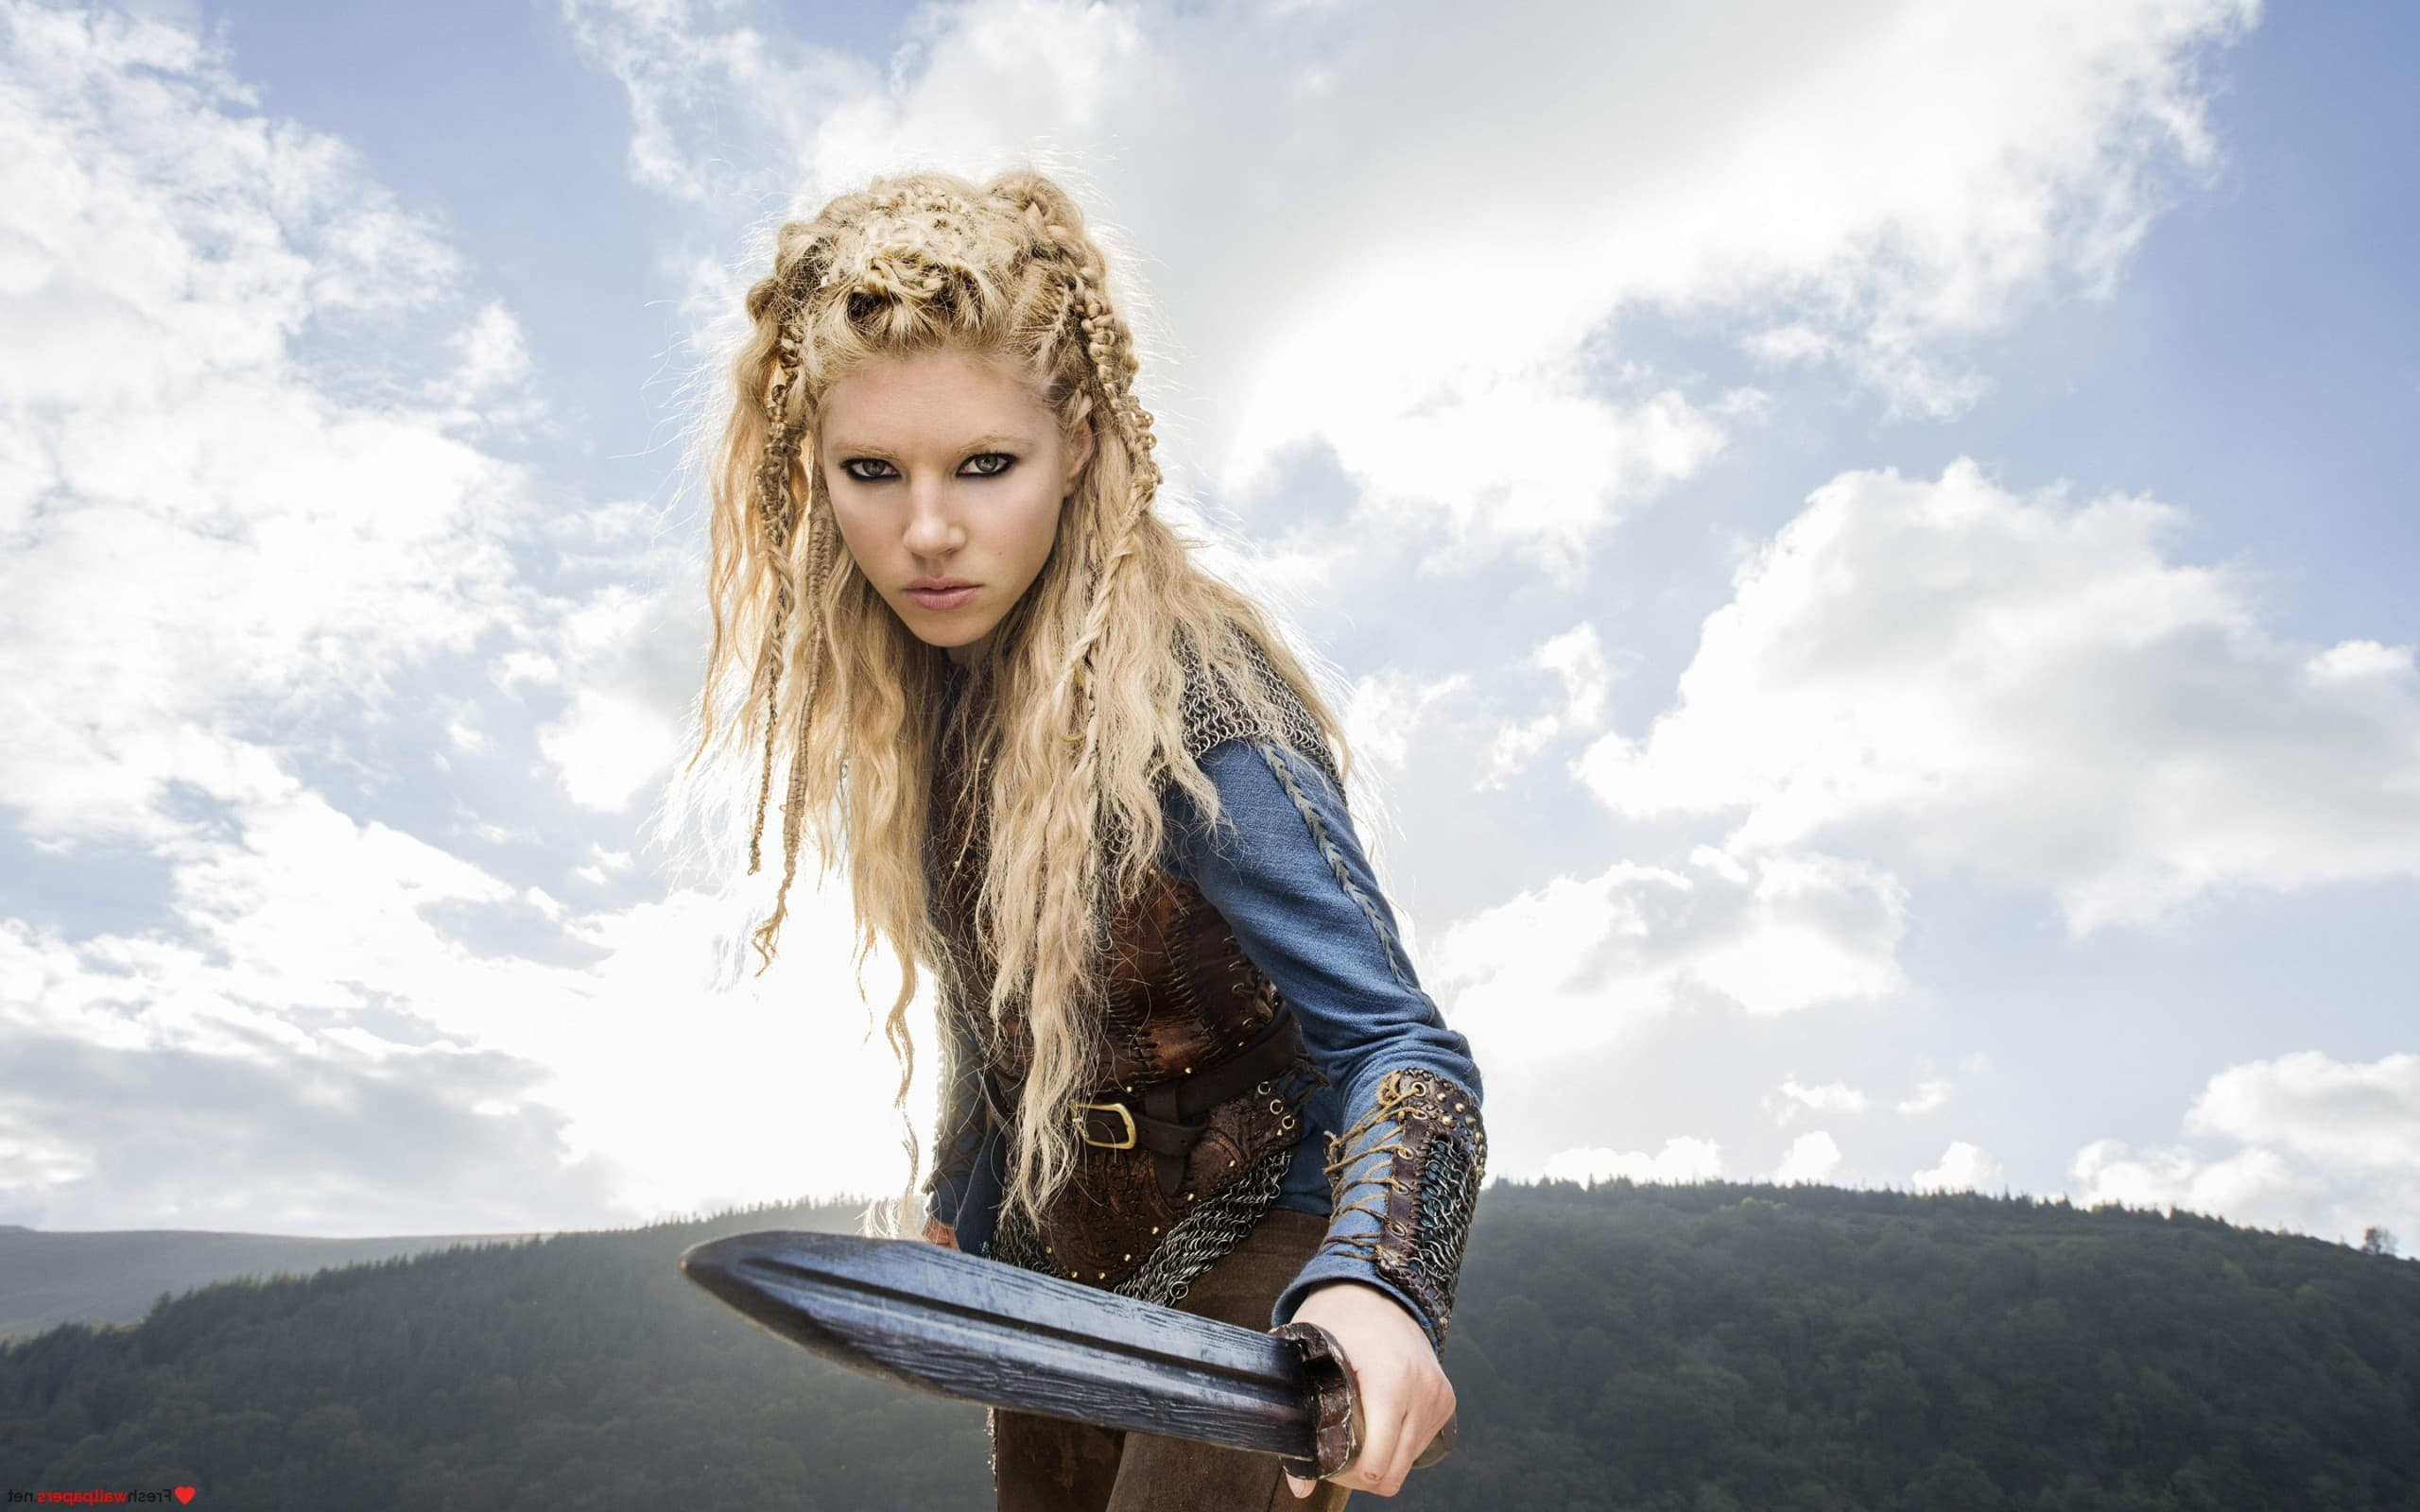 Wallpaper - Vikings Katheryn Winnick As Lagertha with sword